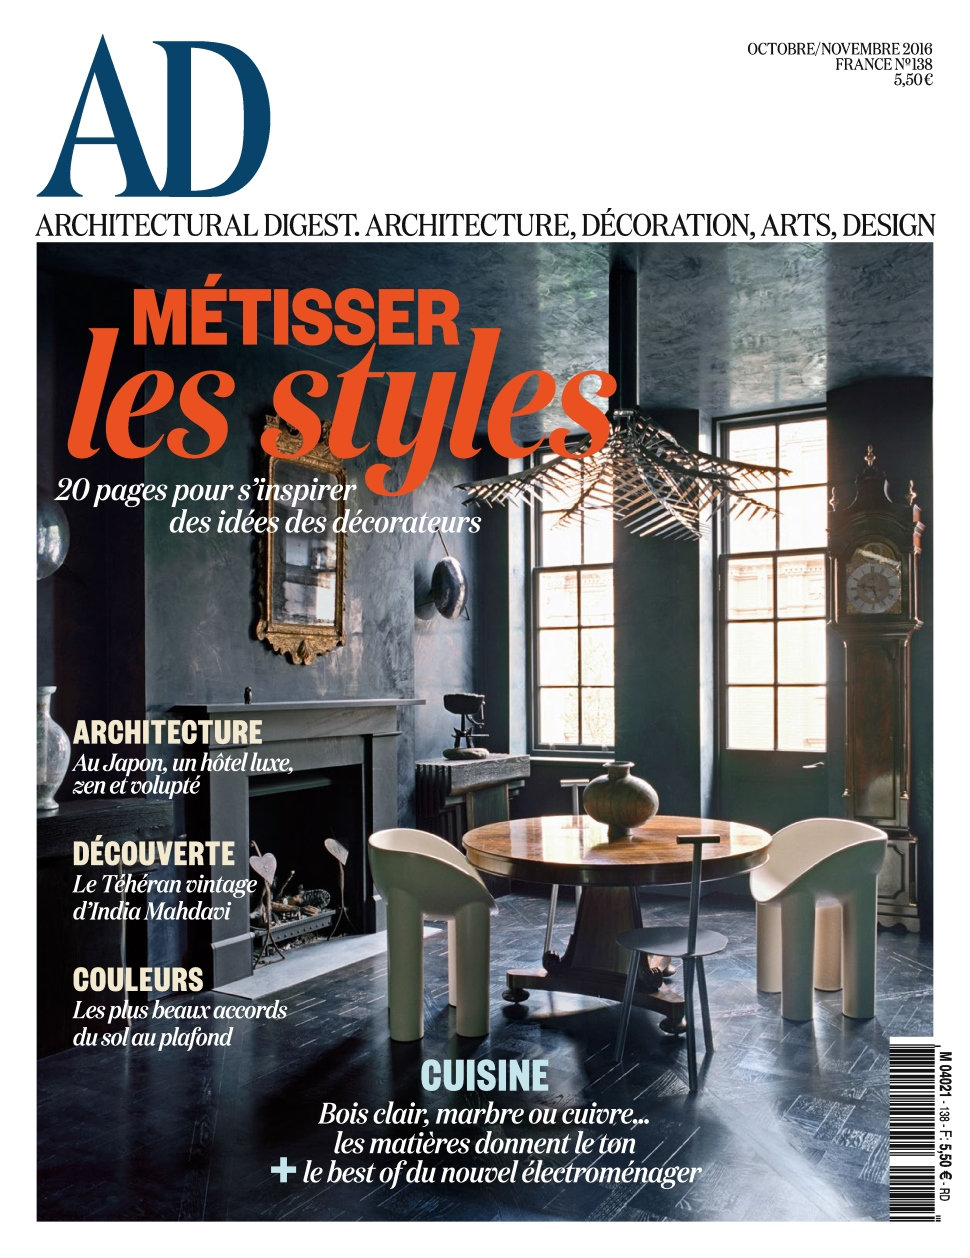 AD France N°138 - Octobre/Novembre 2016